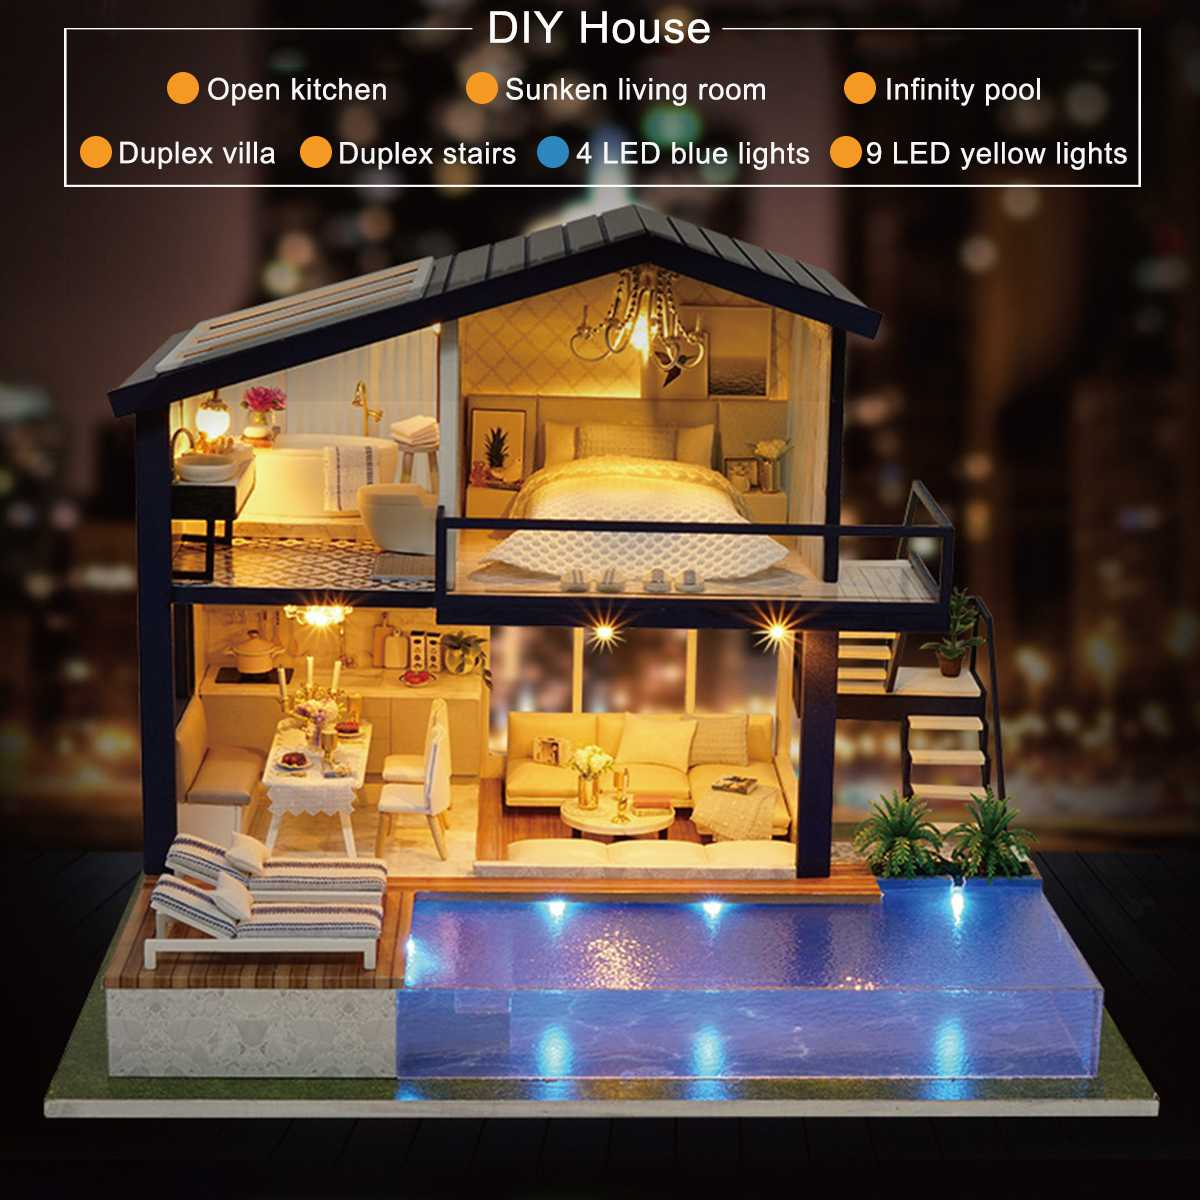 New Doll House Toy Miniature Wooden Doll House Loft With: 3D DIY LED Loft Apartments Wooden Mini Dollhouse Time